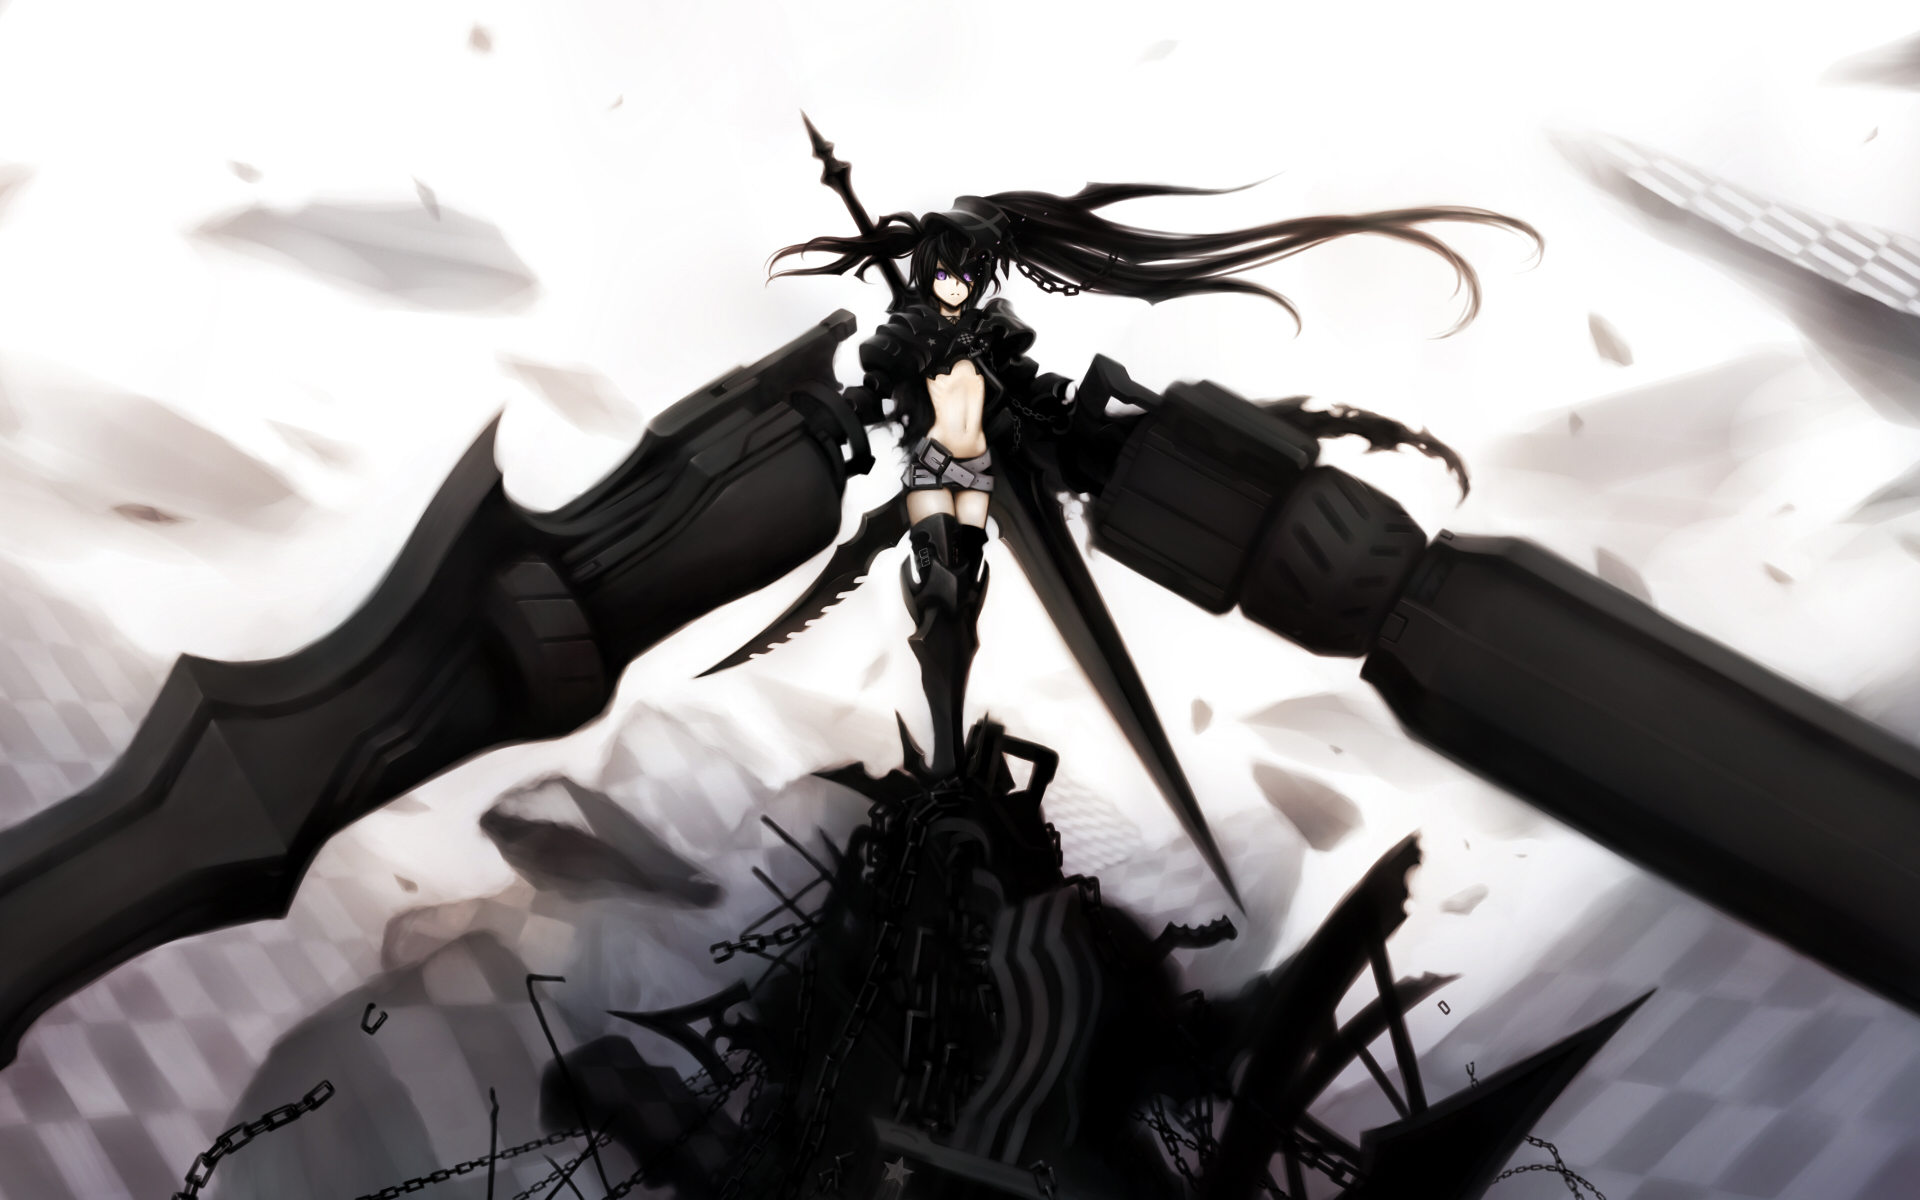 Anime - Black Rock Shooter  - Insane Black Rock Shooter Wallpaper